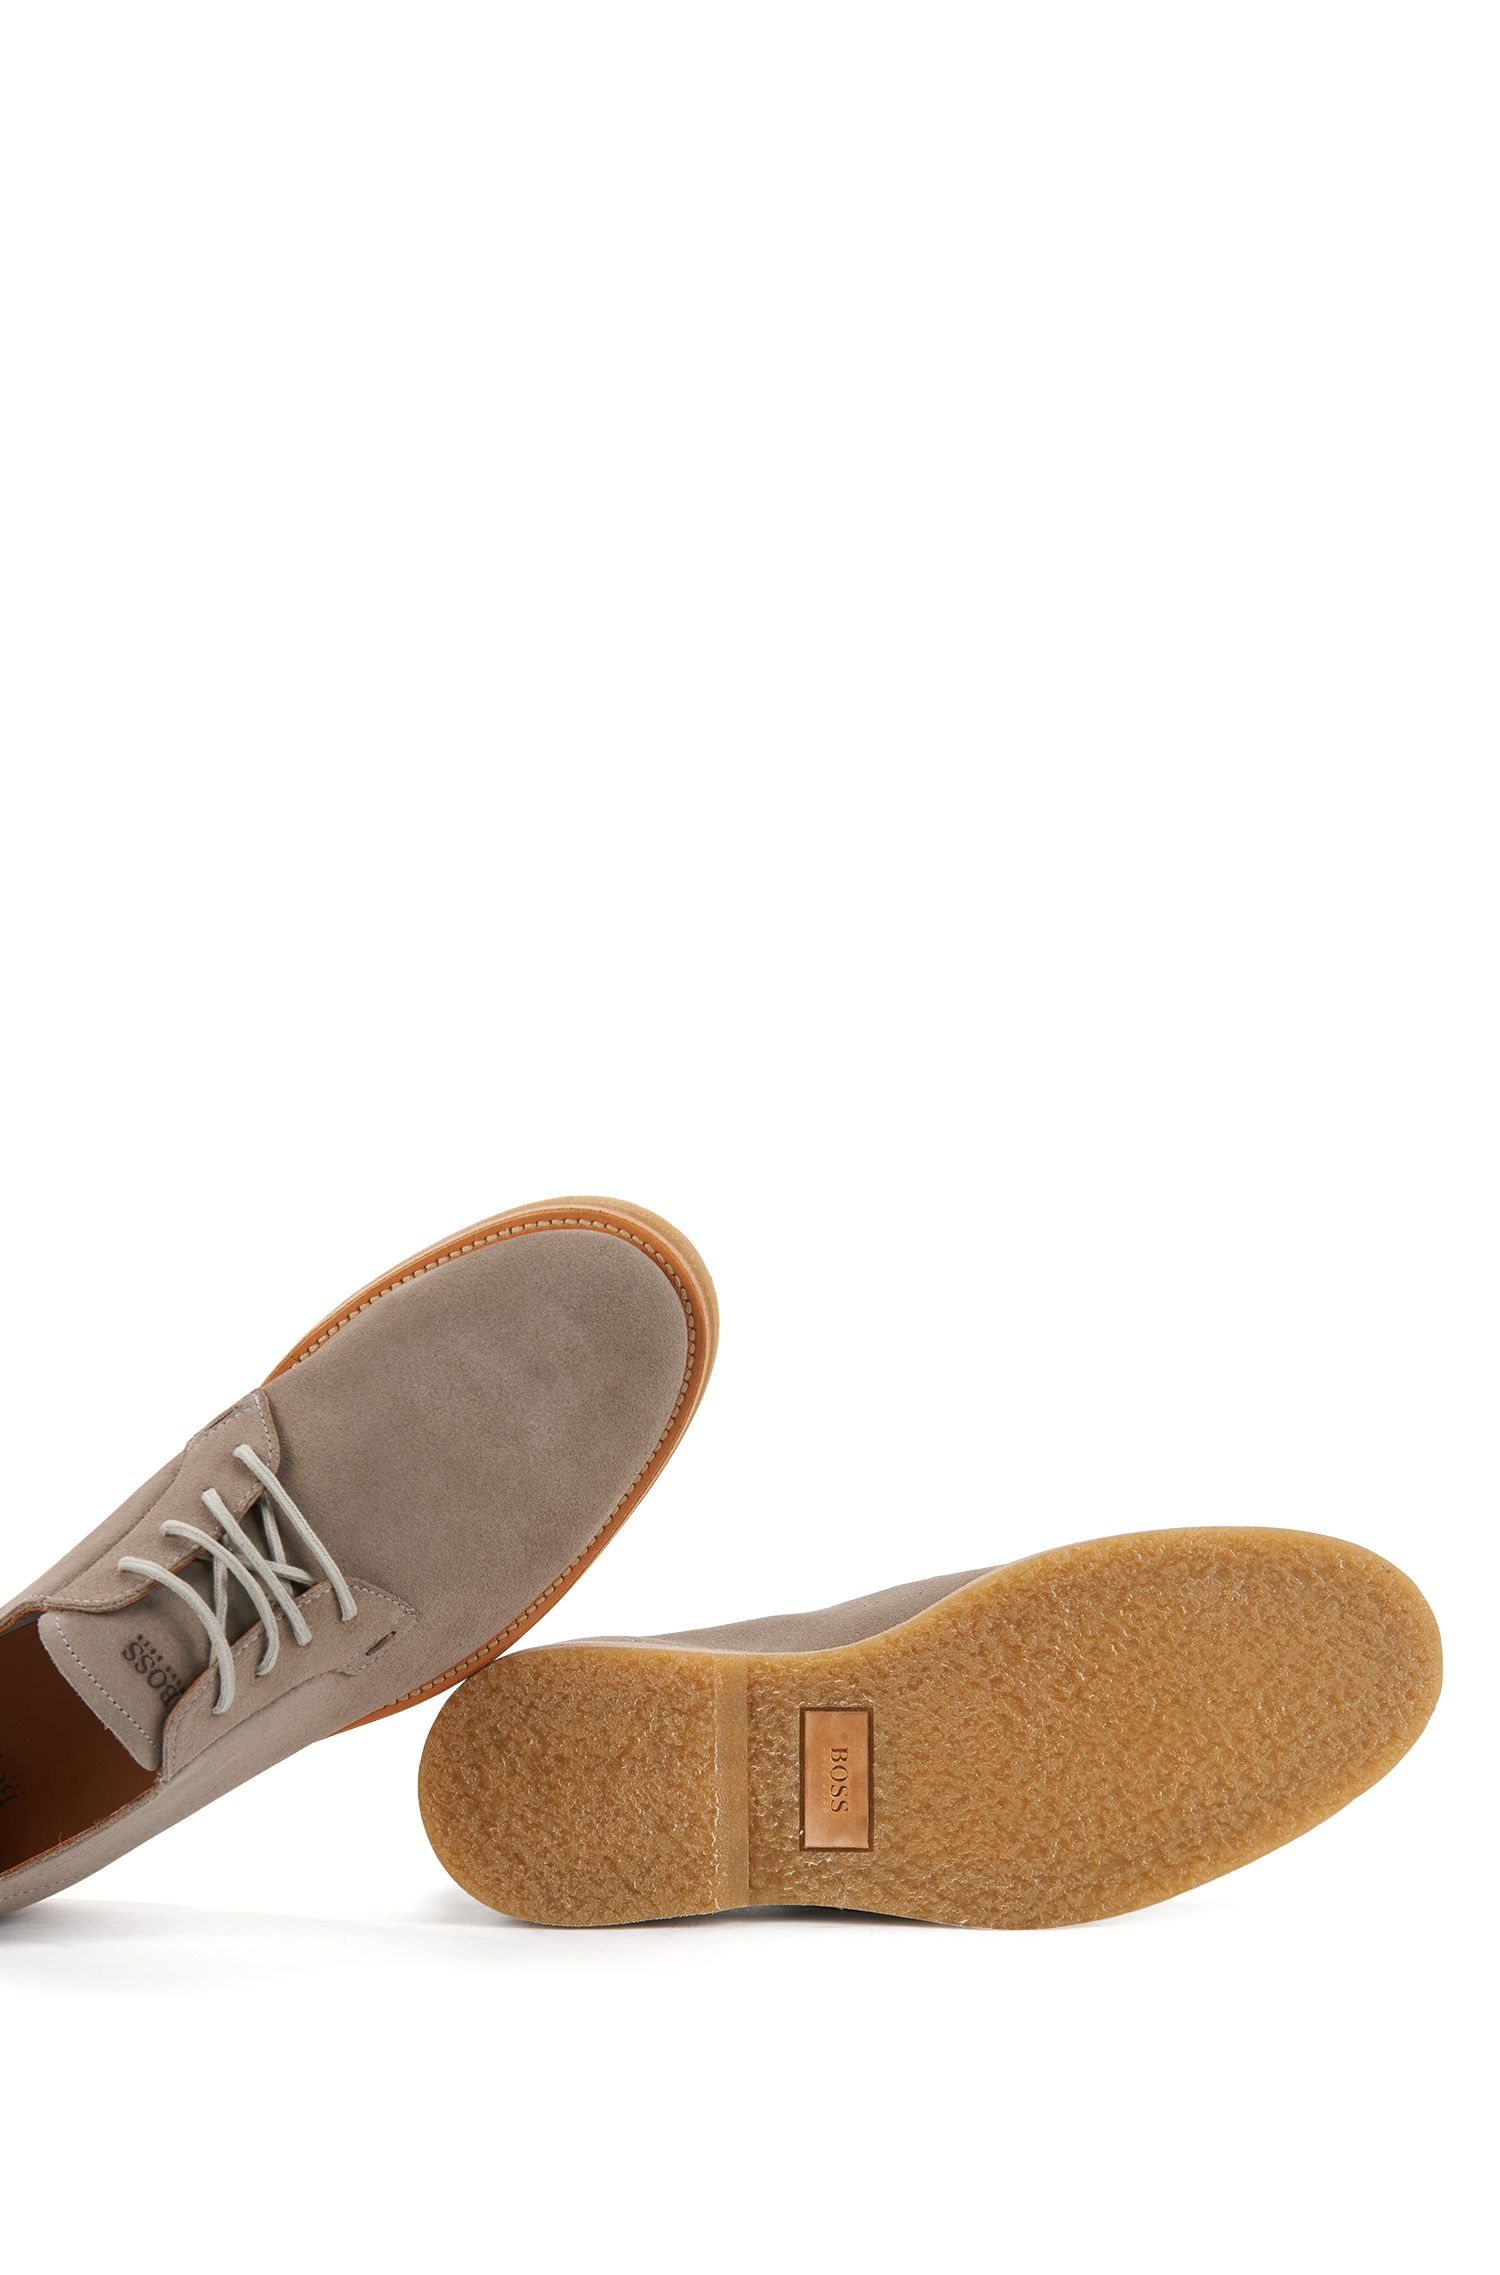 Lace-up suede Derby shoes with rubber soles